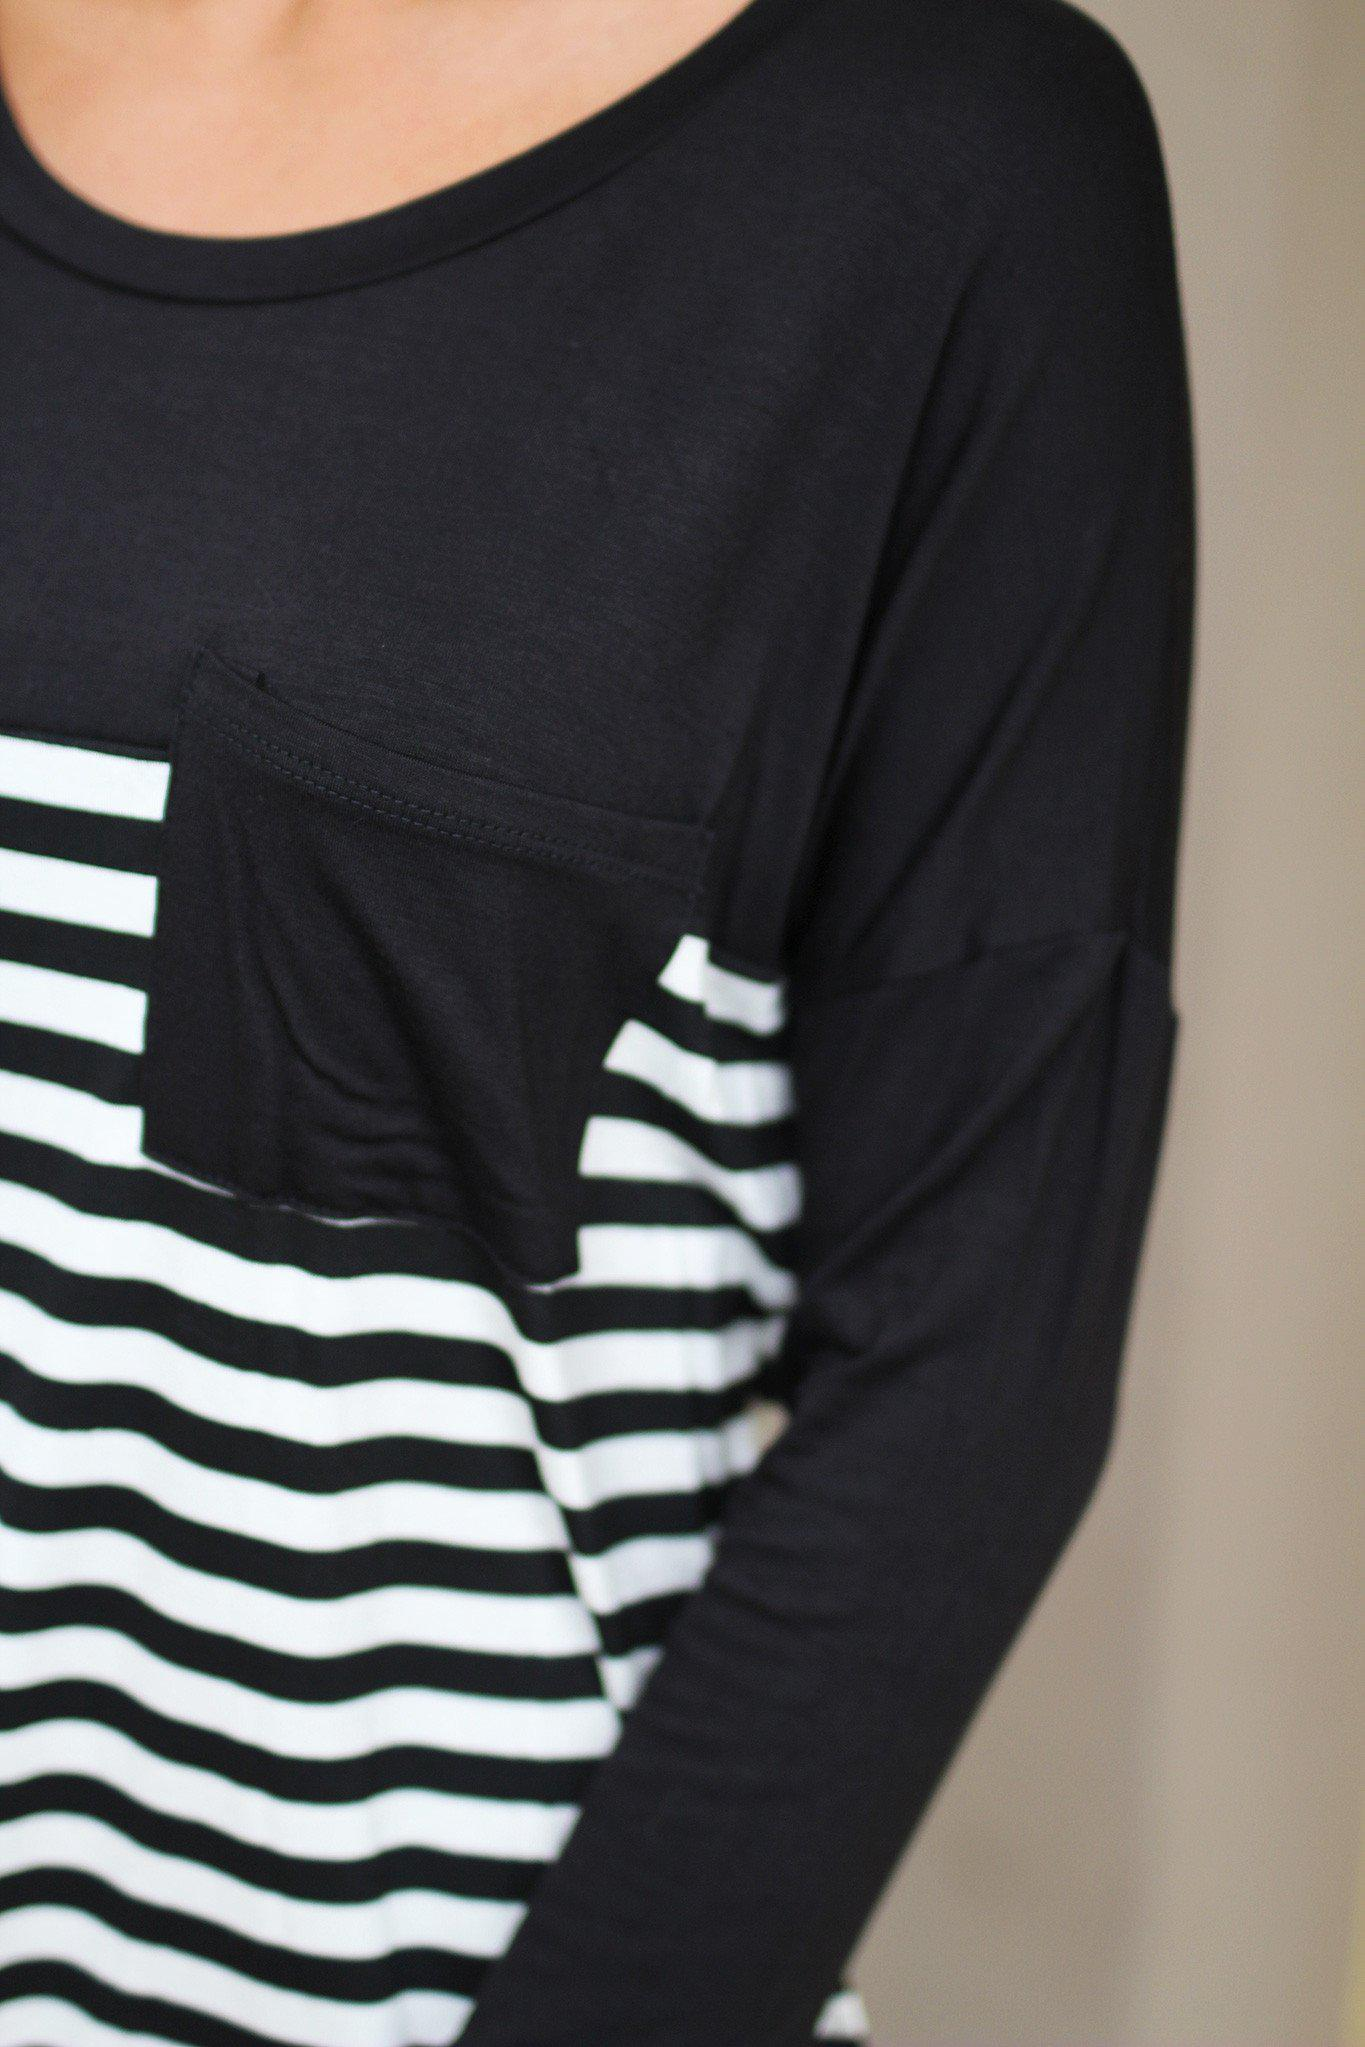 striped top with black pocket